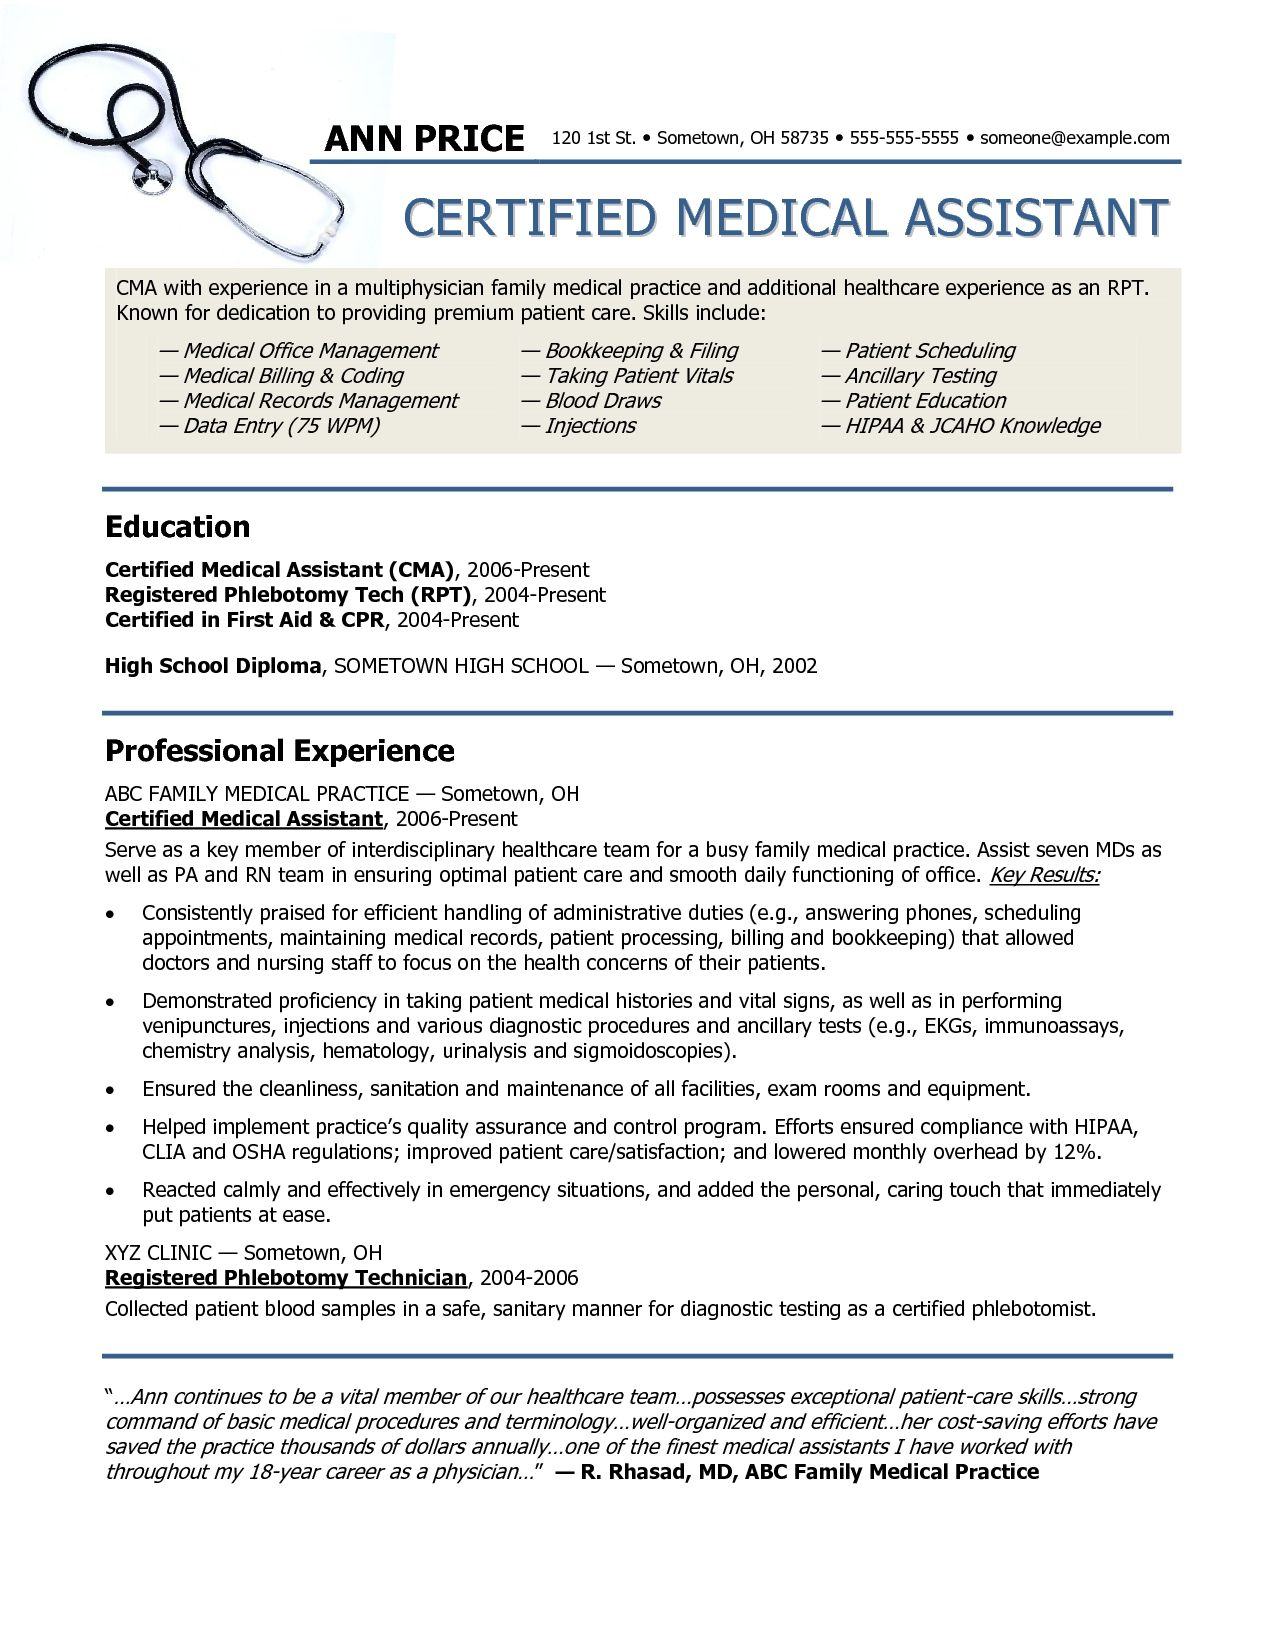 Medical Resumes Examples Resume Examples Medical Assistant  Resume Examples  Pinterest .